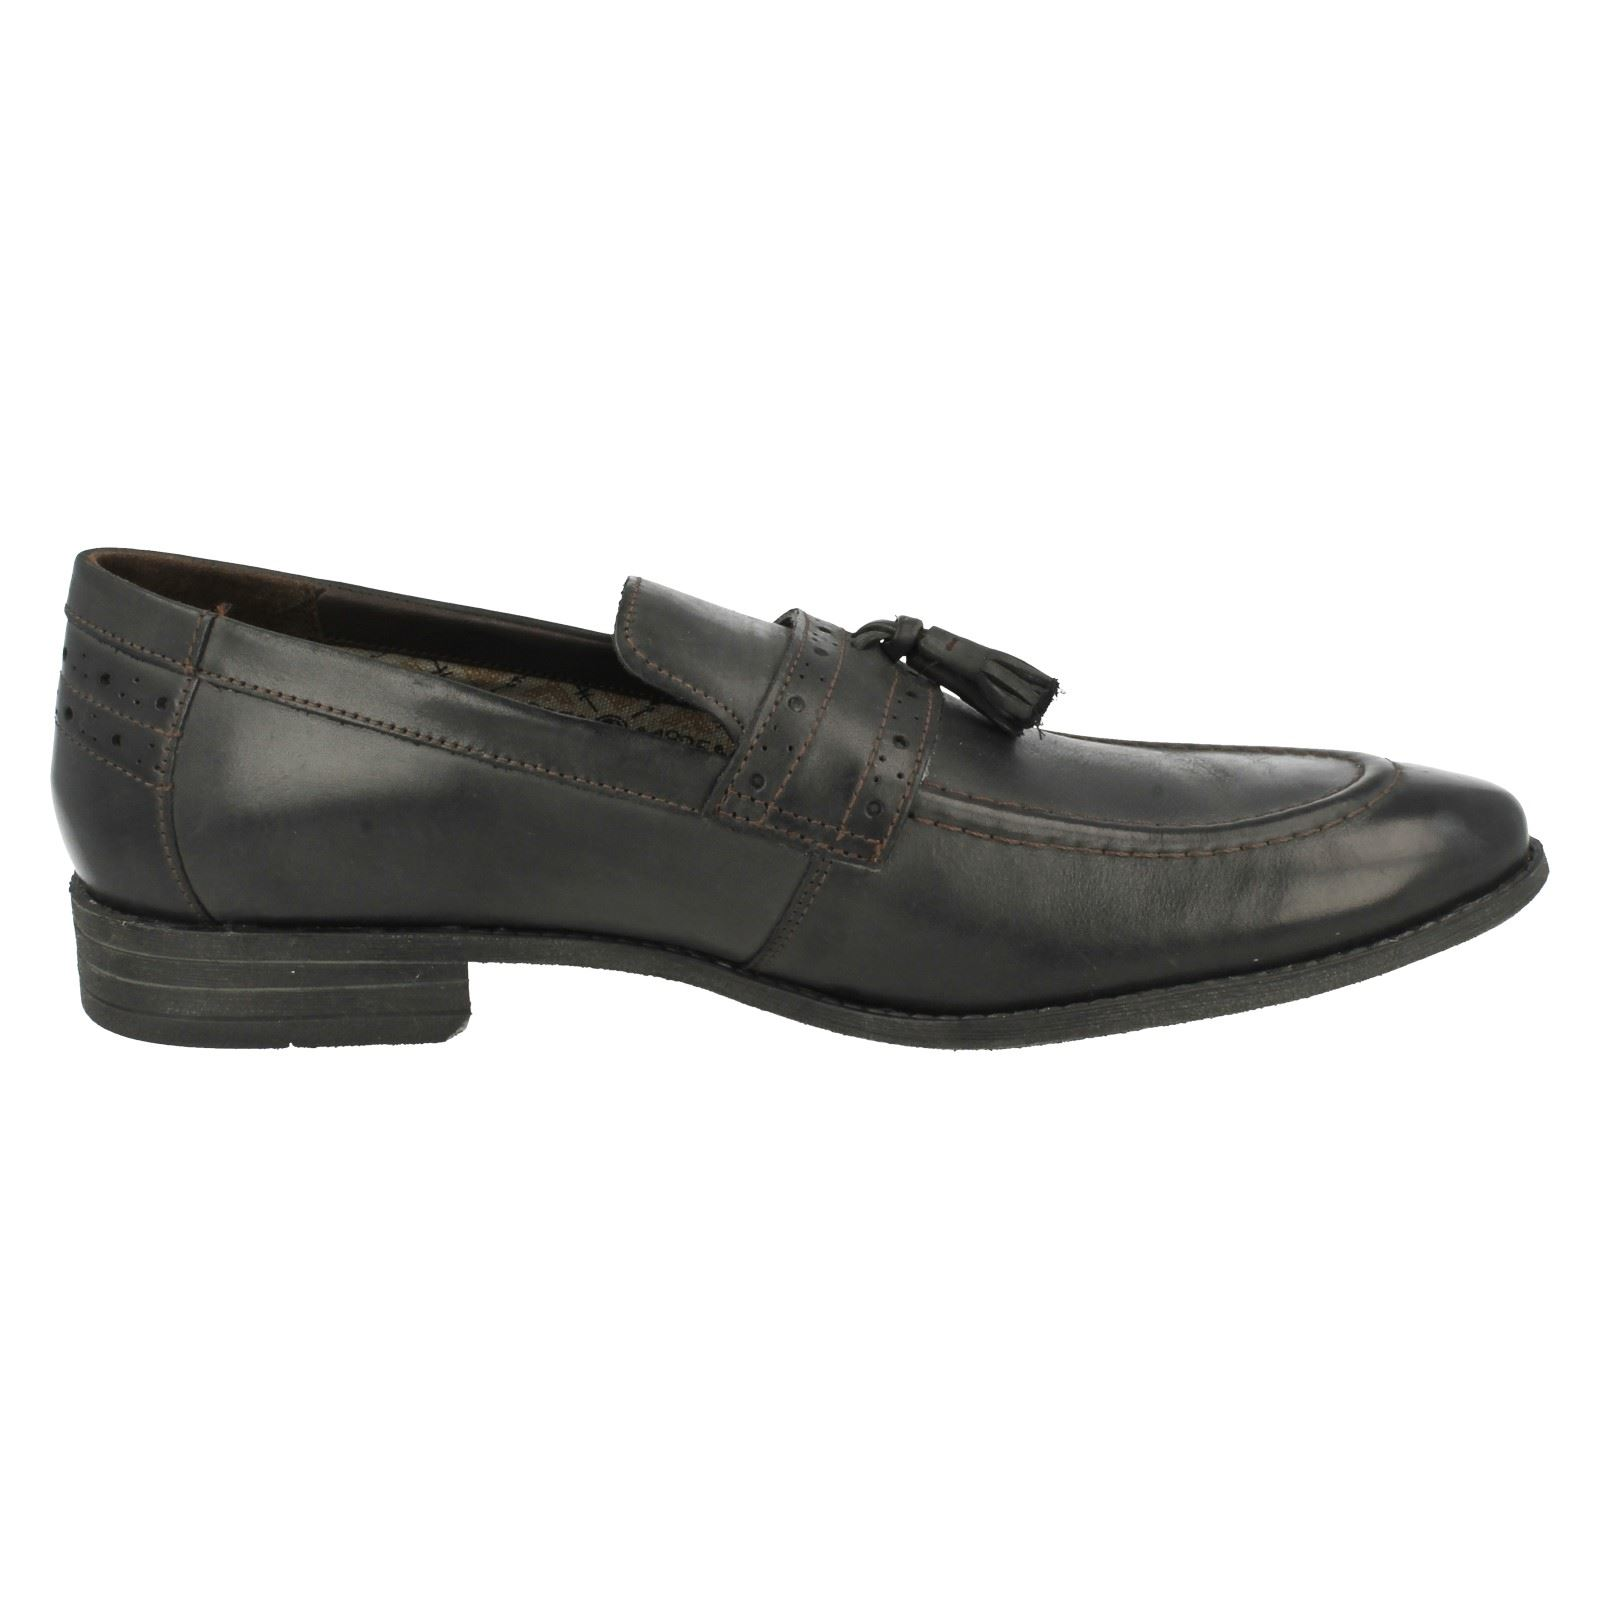 Herren Schuhes Clarks Formal Loafer Schuhes Herren 'Chart Lift' d7c2e0